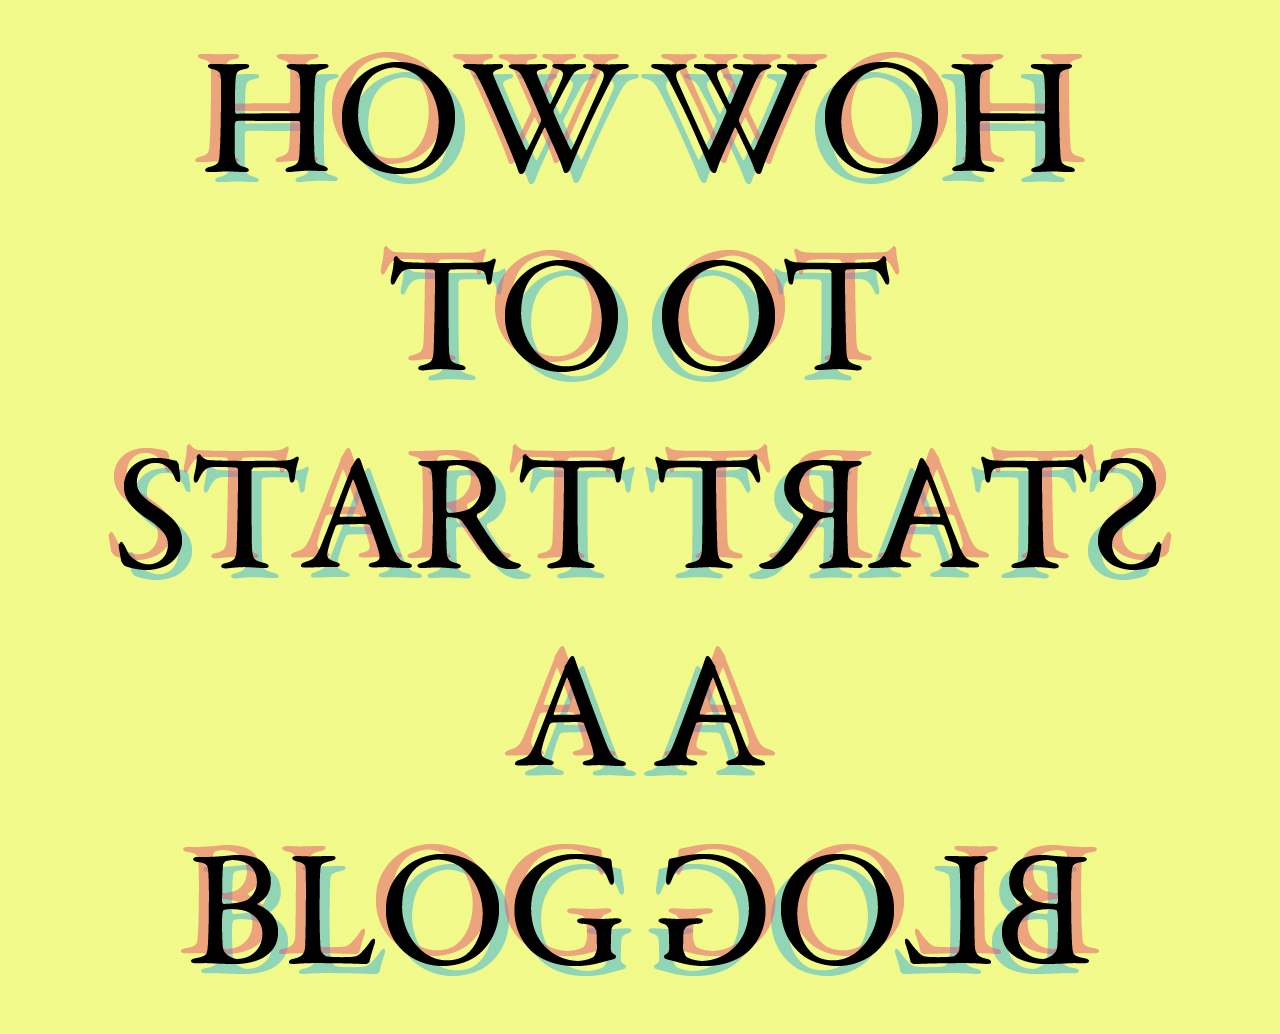 Blogging tips and tricks with theBohmrian.com